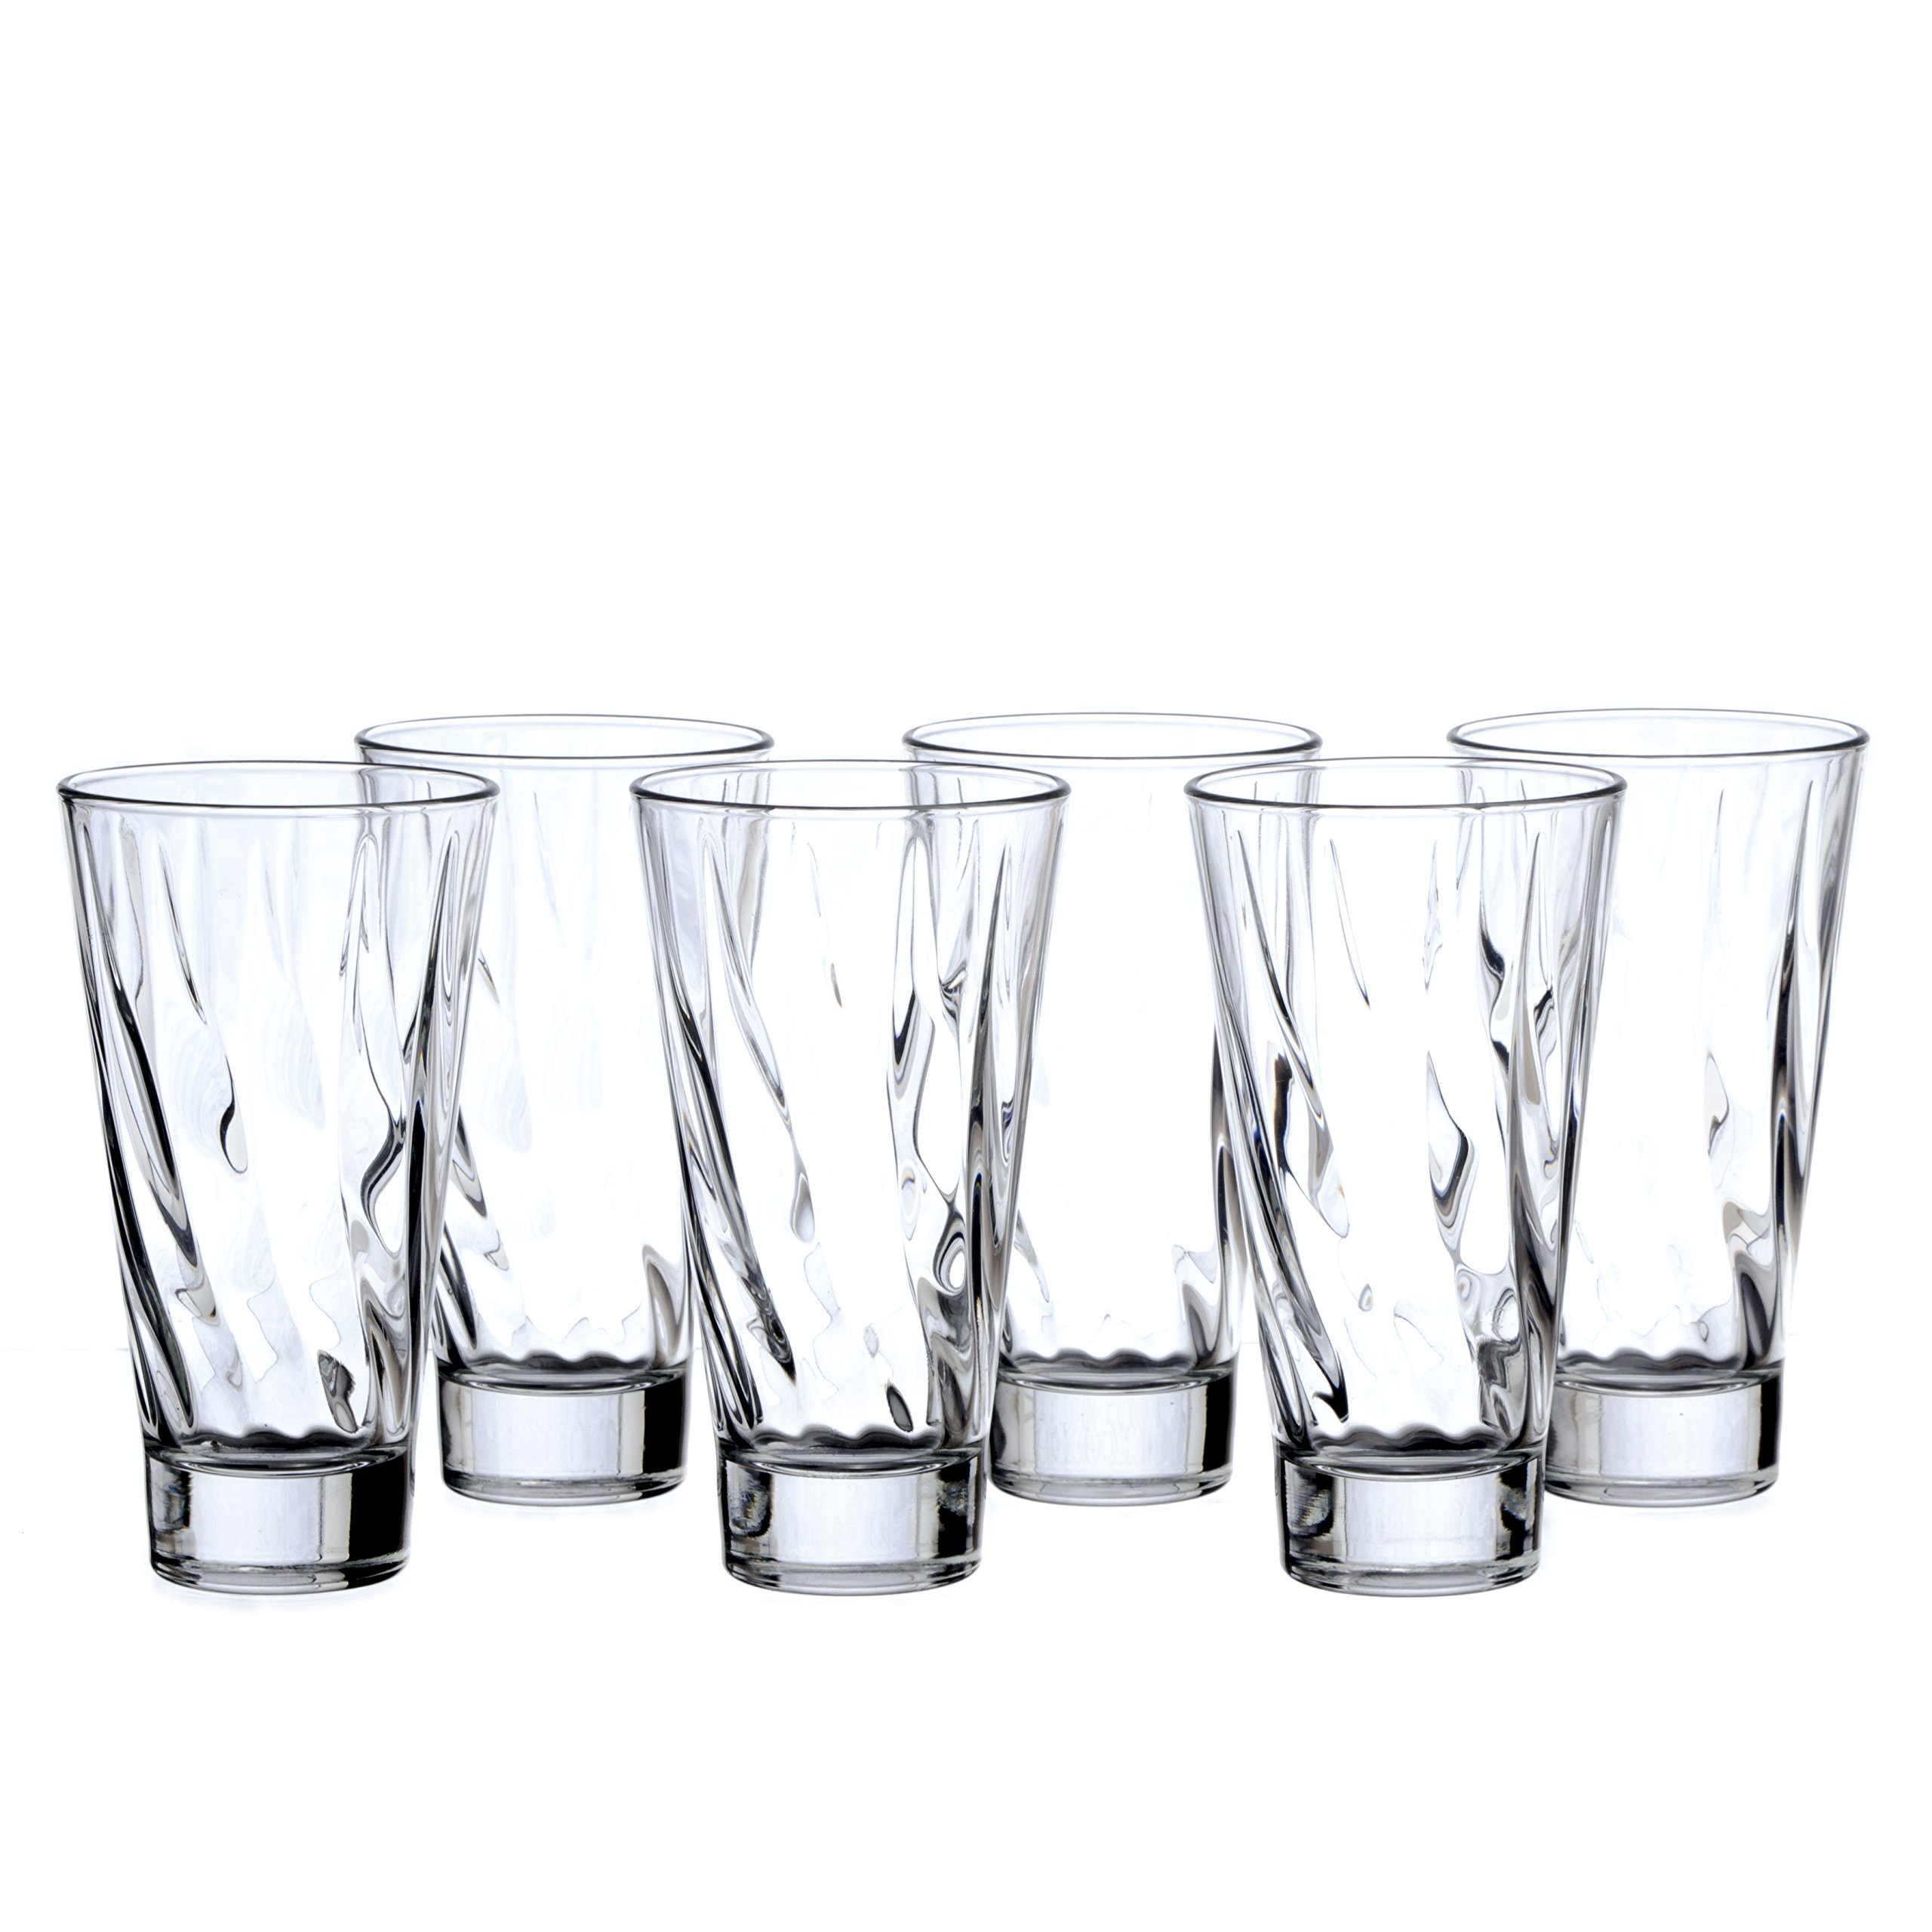 Crystal Highball Water/Beverage/Cocktail Glasses Sets, (4-Pieses set, 8-Pieces set, 16-Pieces set), 12oz (350 ml), Durable Tempered Glass (8)